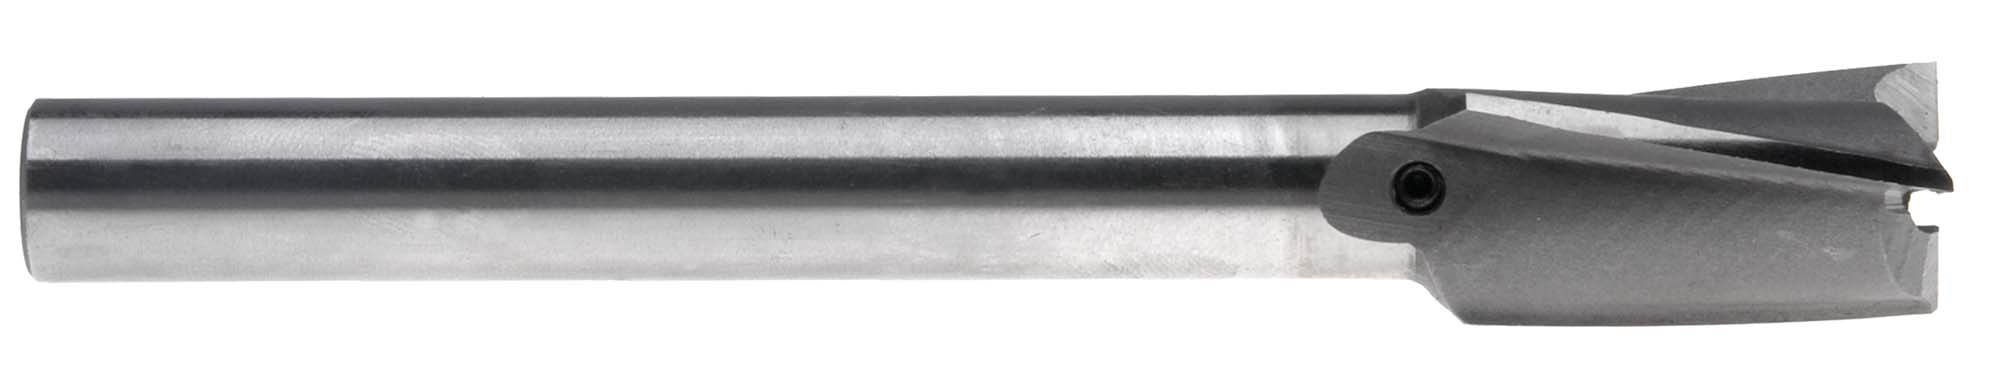 "23/32"" Straight Shank Counterbore, Interchangeable Pilot Type, High Speed Steel"